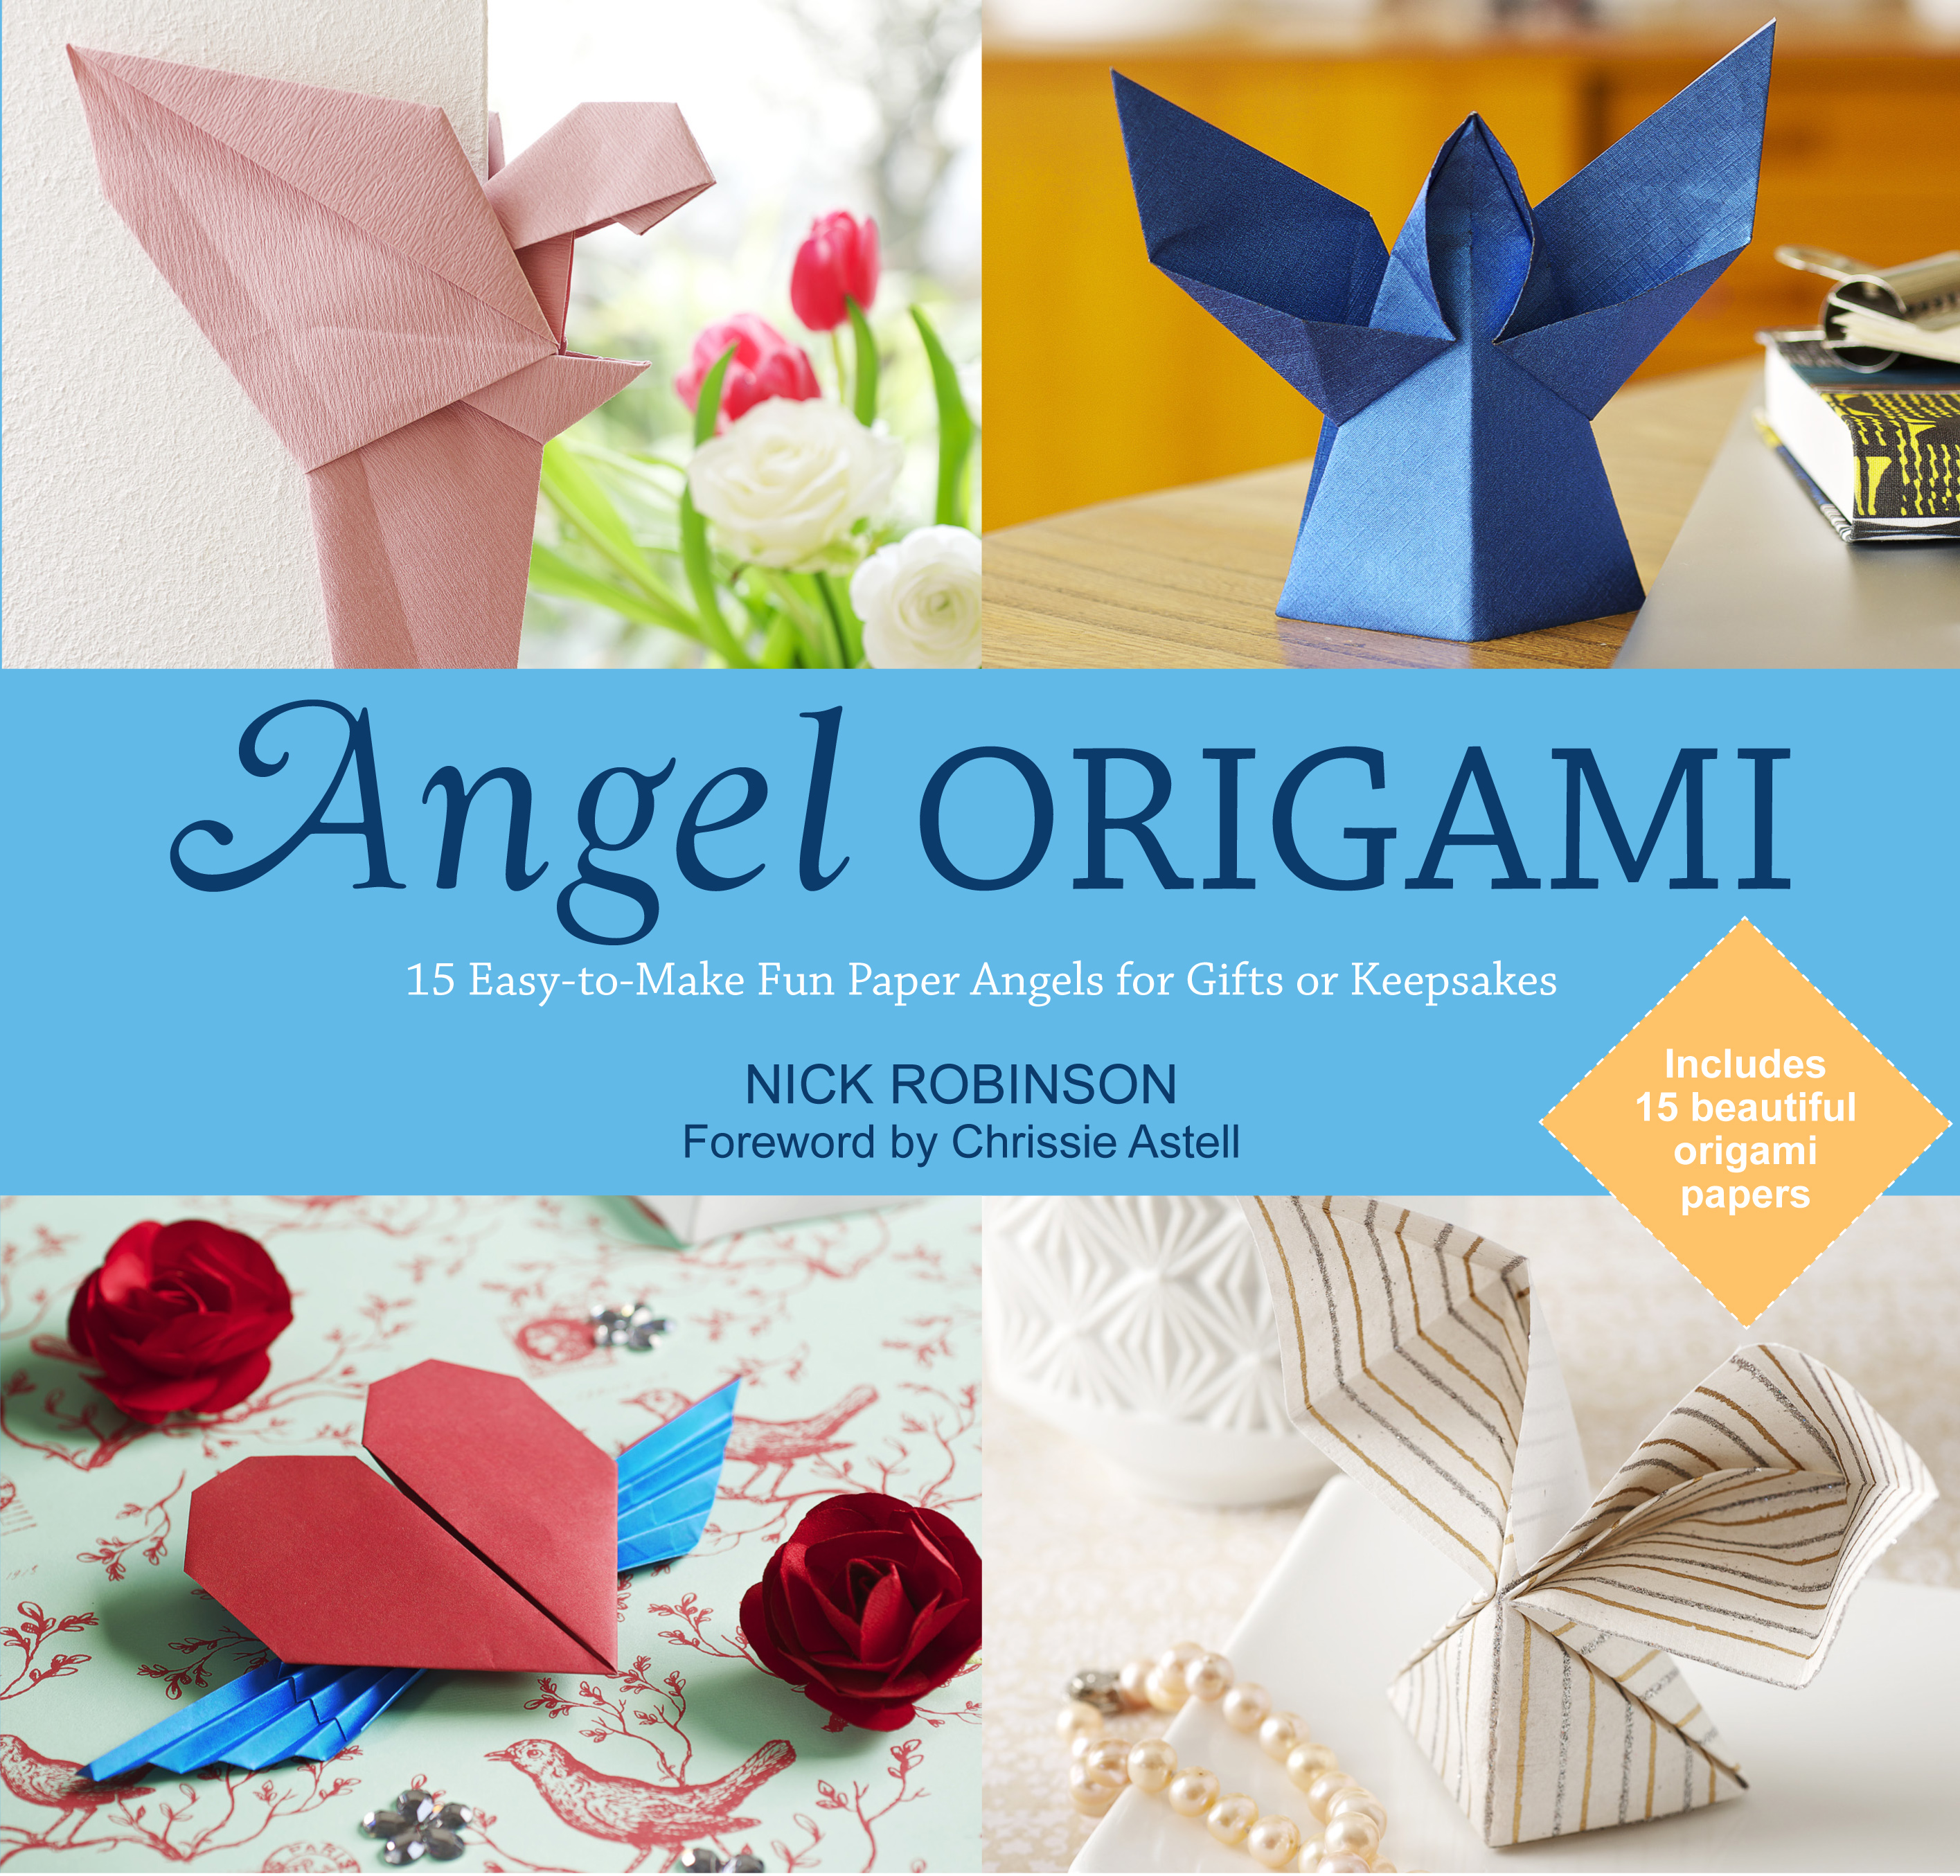 Angel Origami: 15 Easy to Make Fun Paper Angels for Gifts or Keepsakes